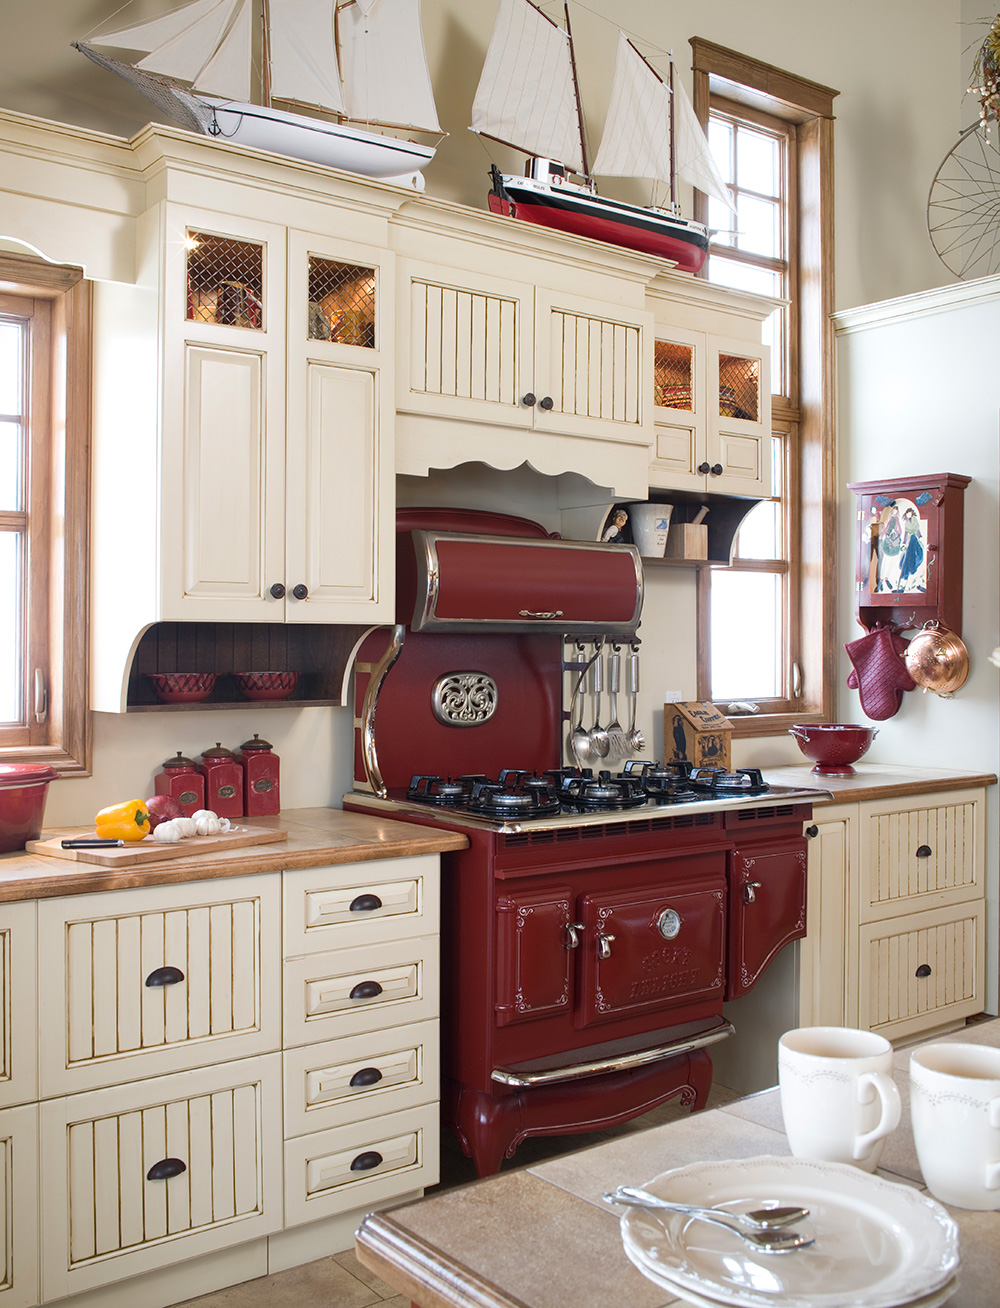 The History of Old Stoves - Old House Journal Magazine